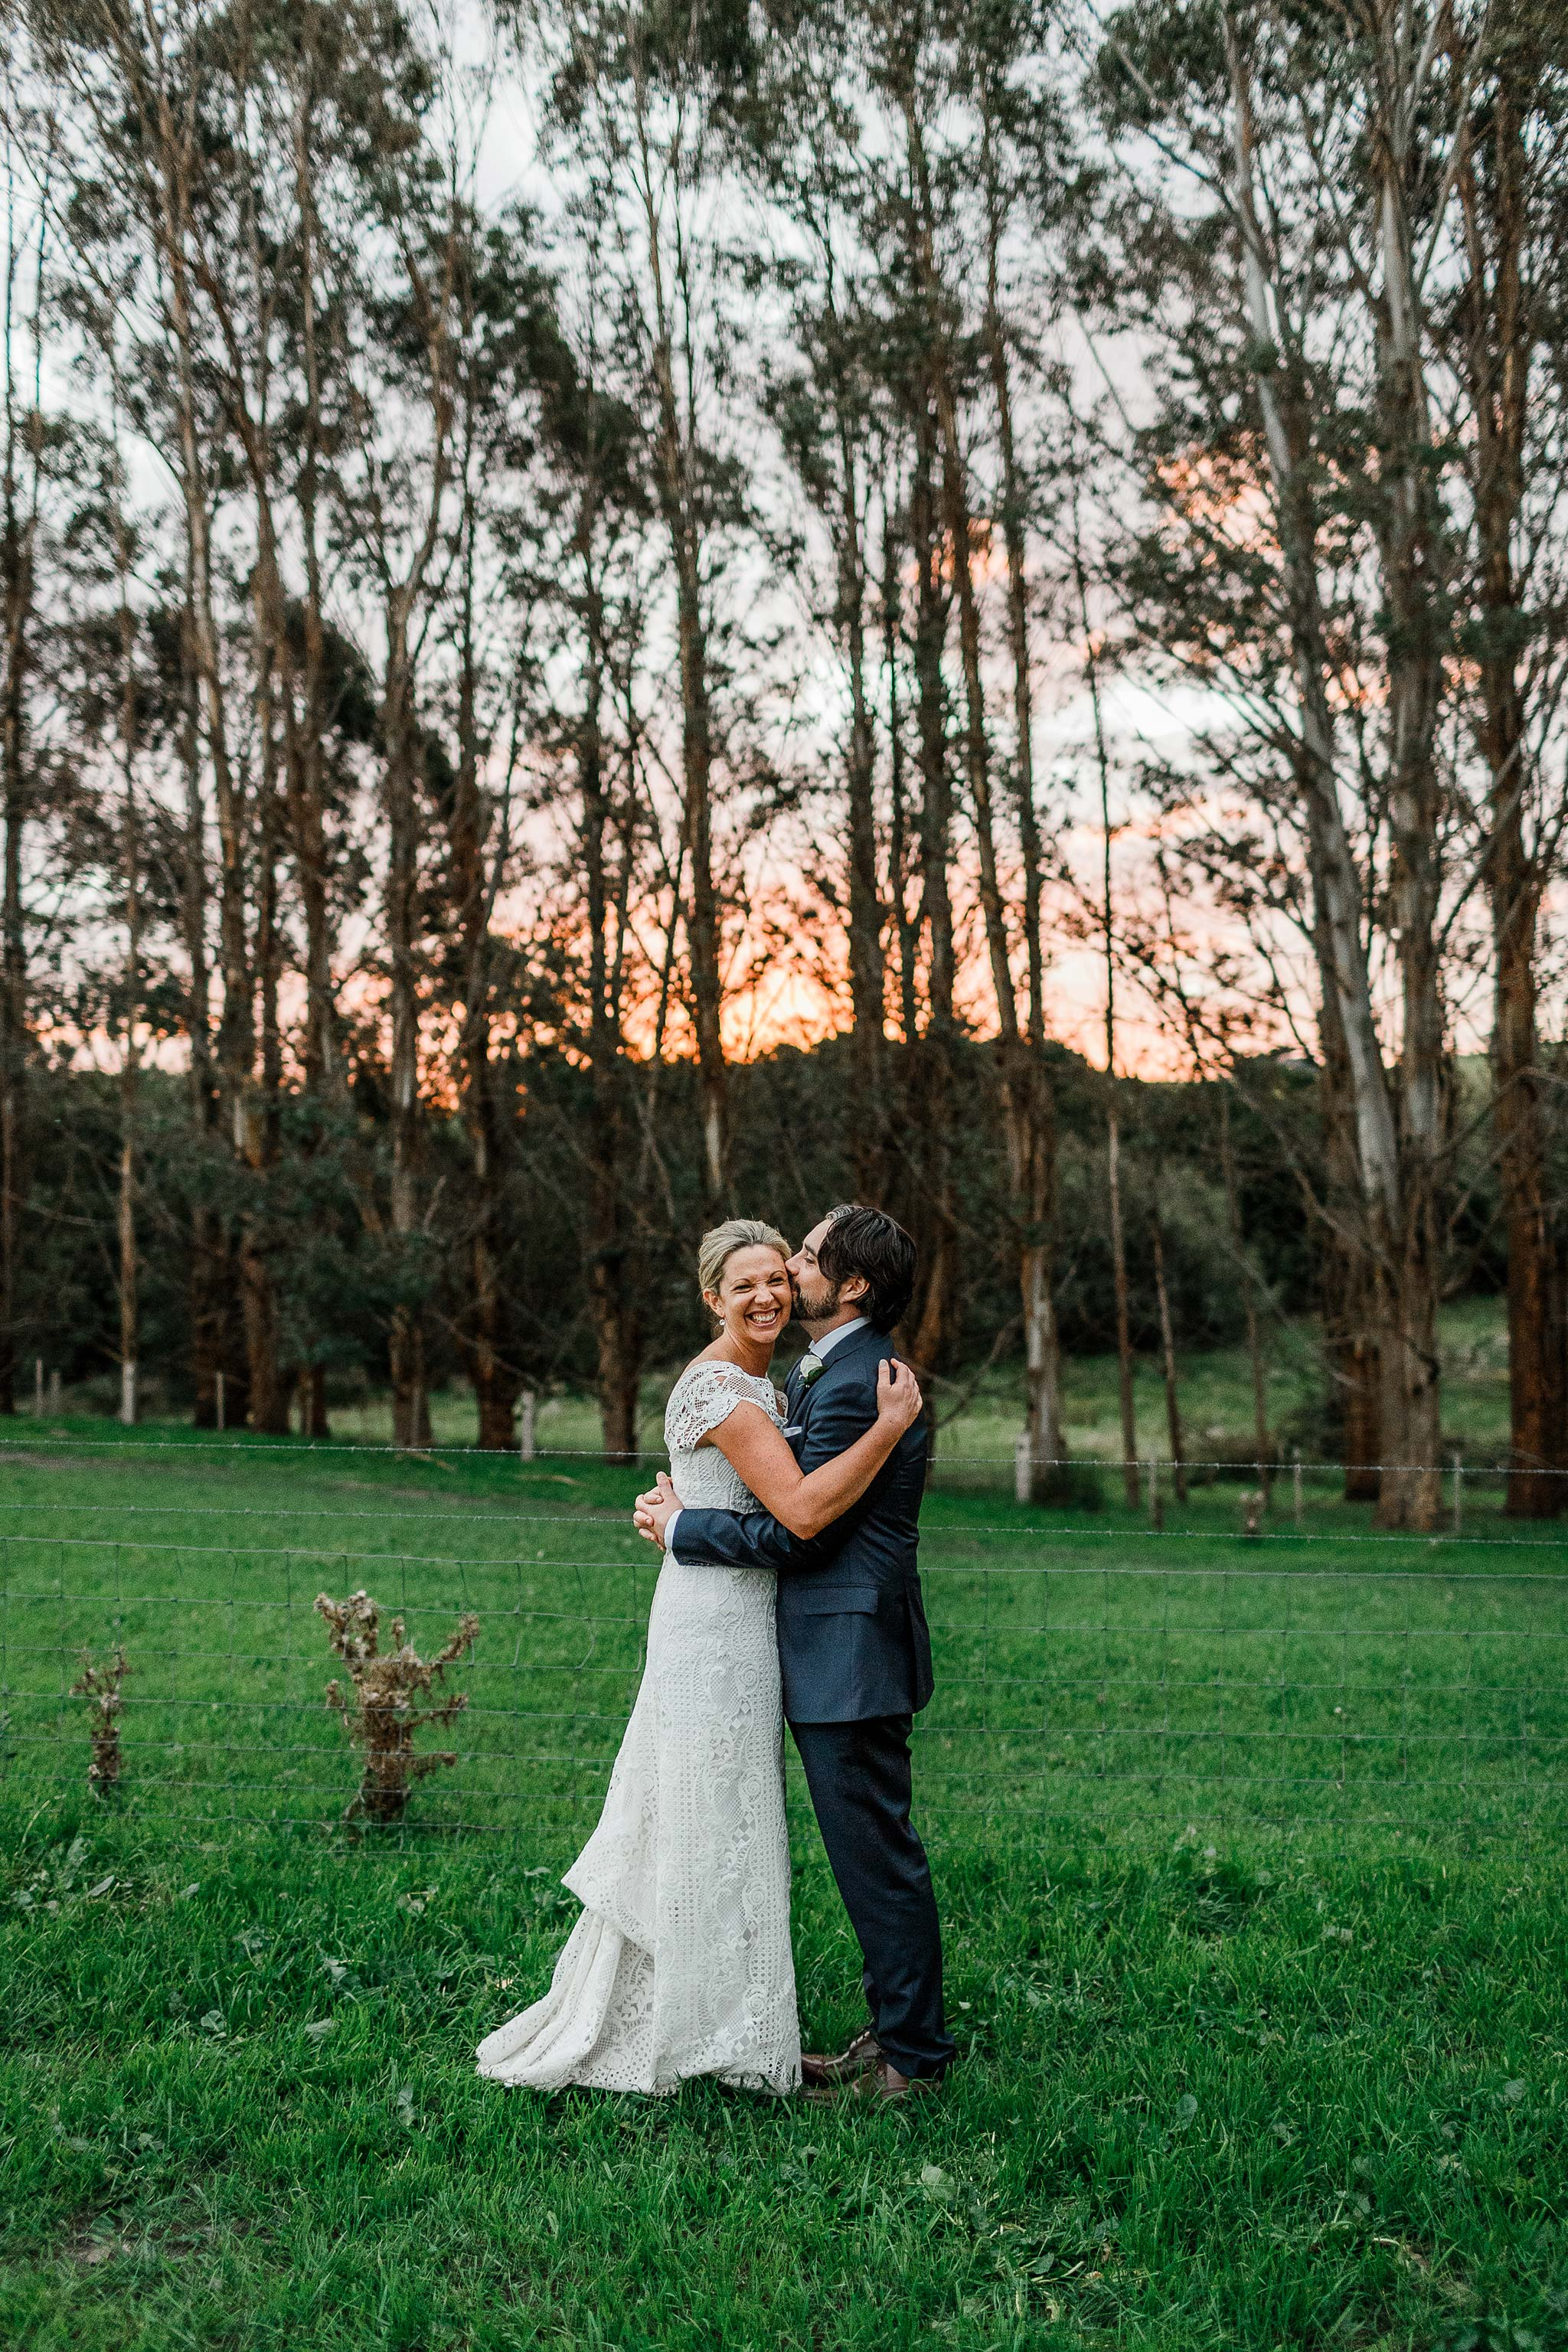 Tasmania-Davenport-Farm-Wedding-golden-hour